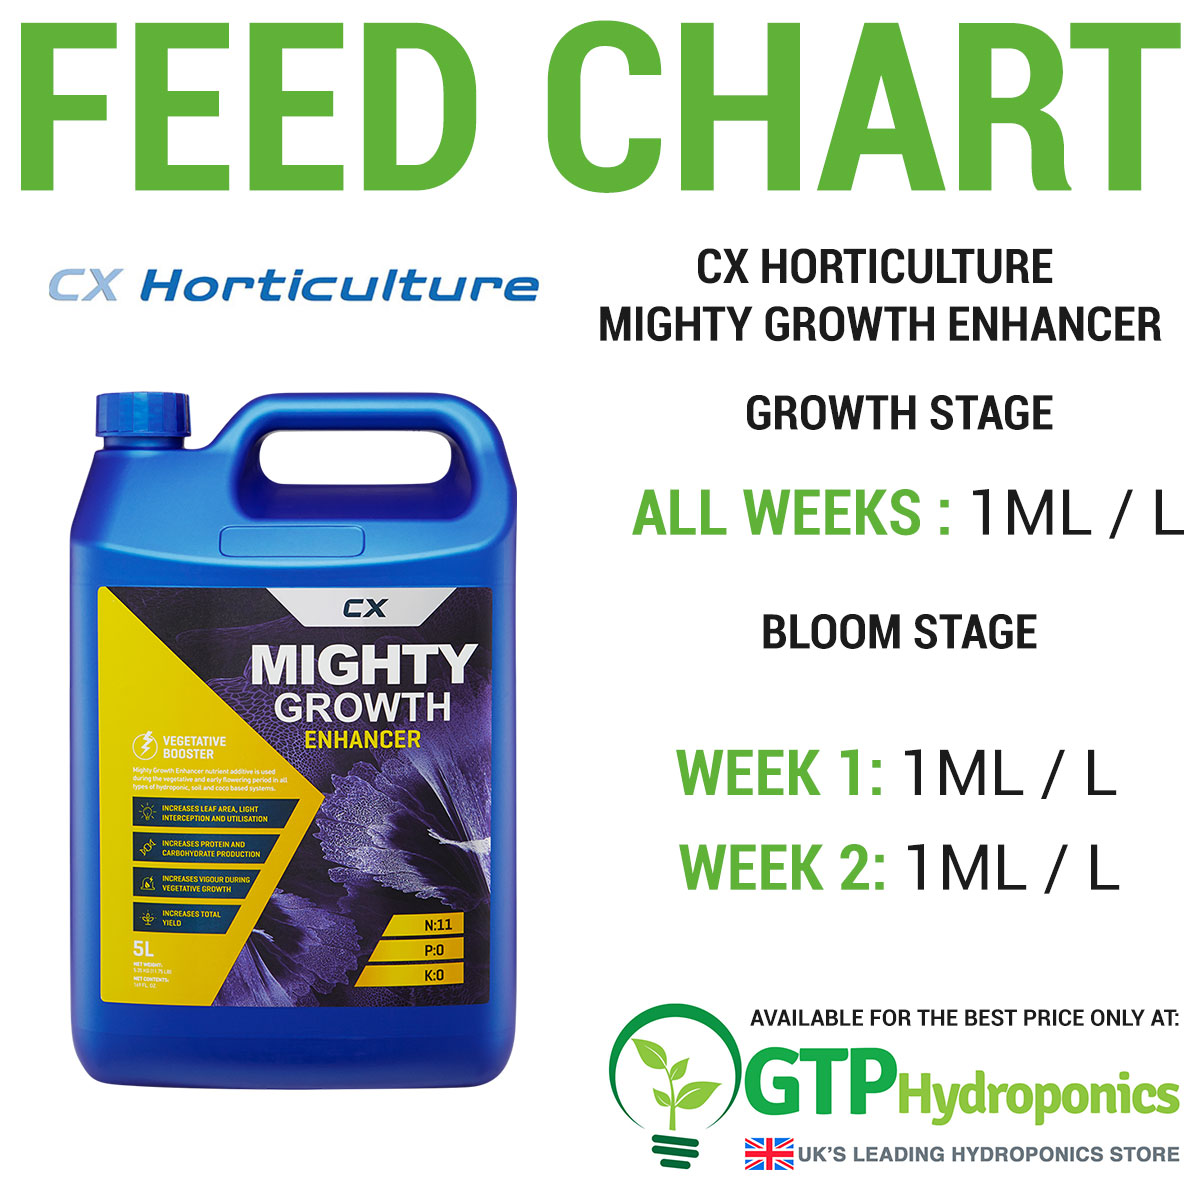 CX Horticulture Mighty Growth Enhancer overview